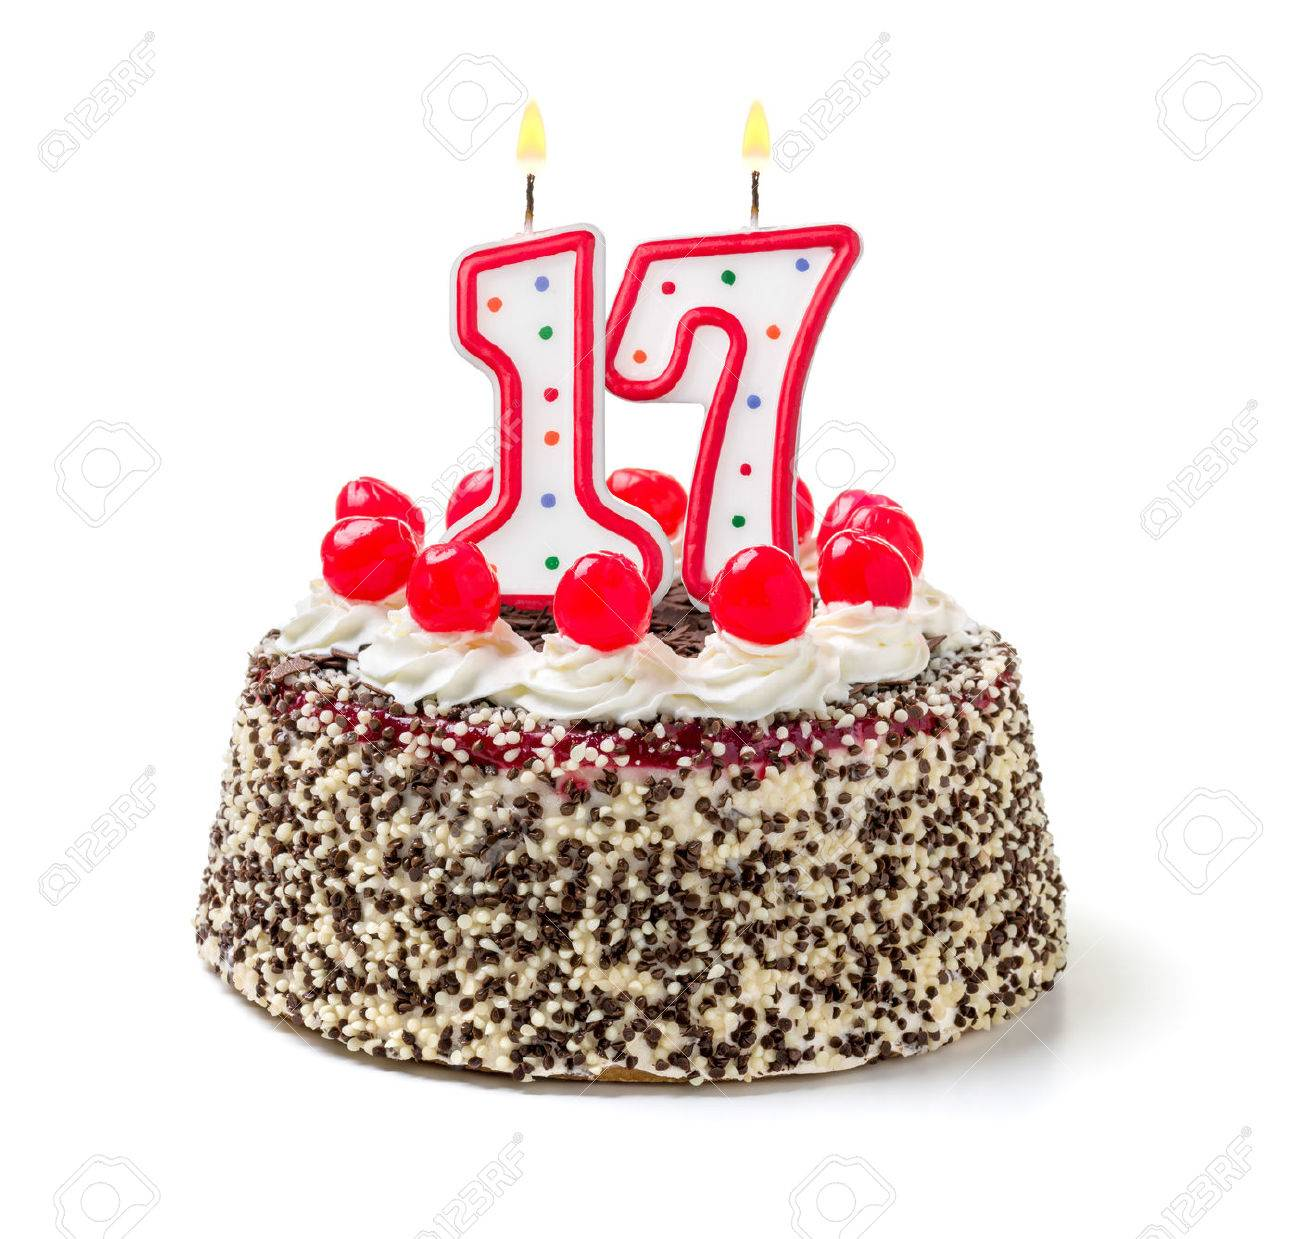 Tremendous Birthday Cake With Burning Candle Number 17 Stock Photo Picture Funny Birthday Cards Online Alyptdamsfinfo